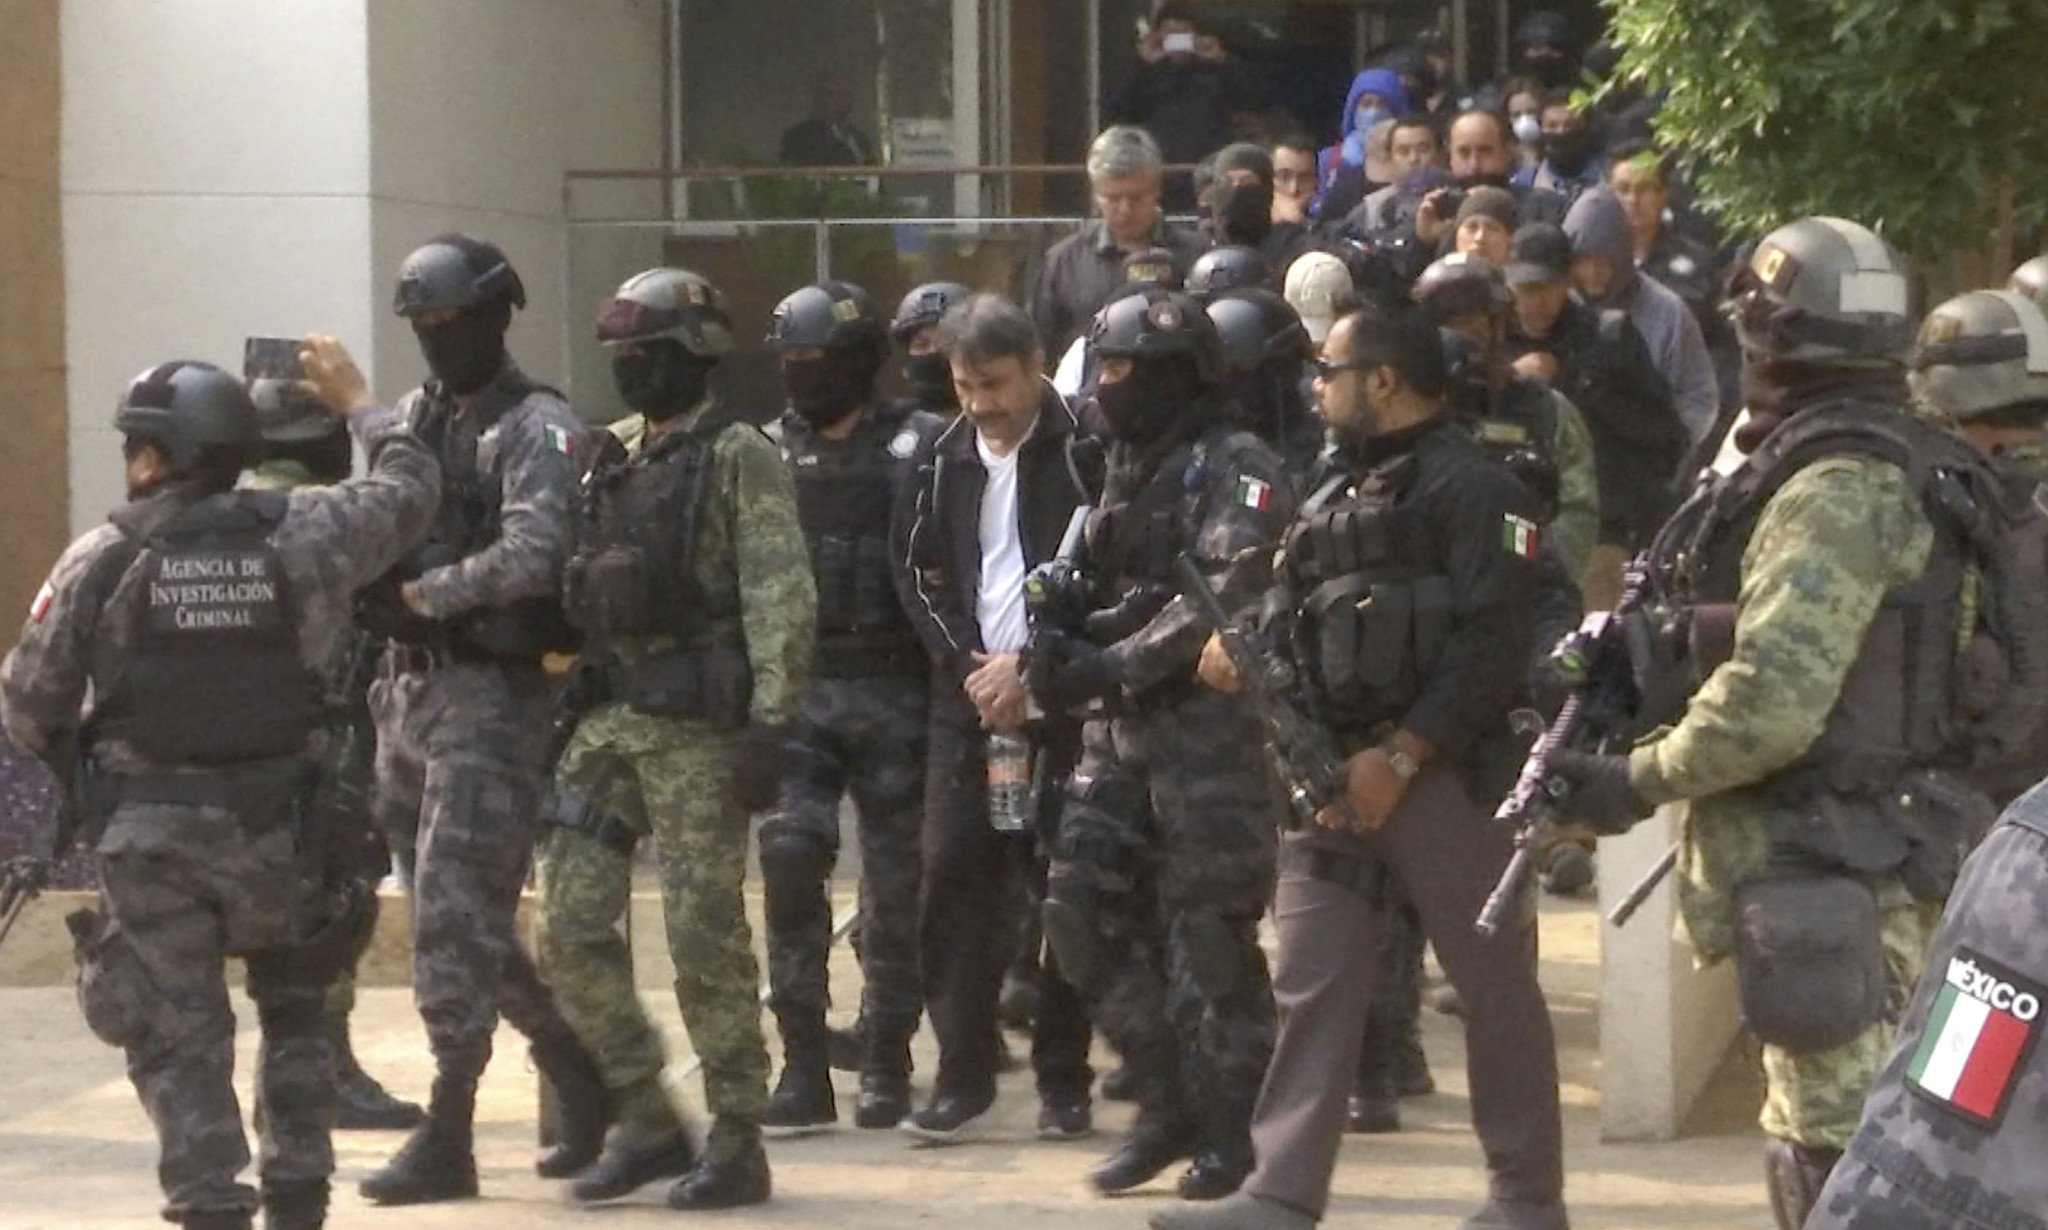 mexico captures sinaloa cartel leader who fought for control of gang after  u0026 39 el chapo u0026 39